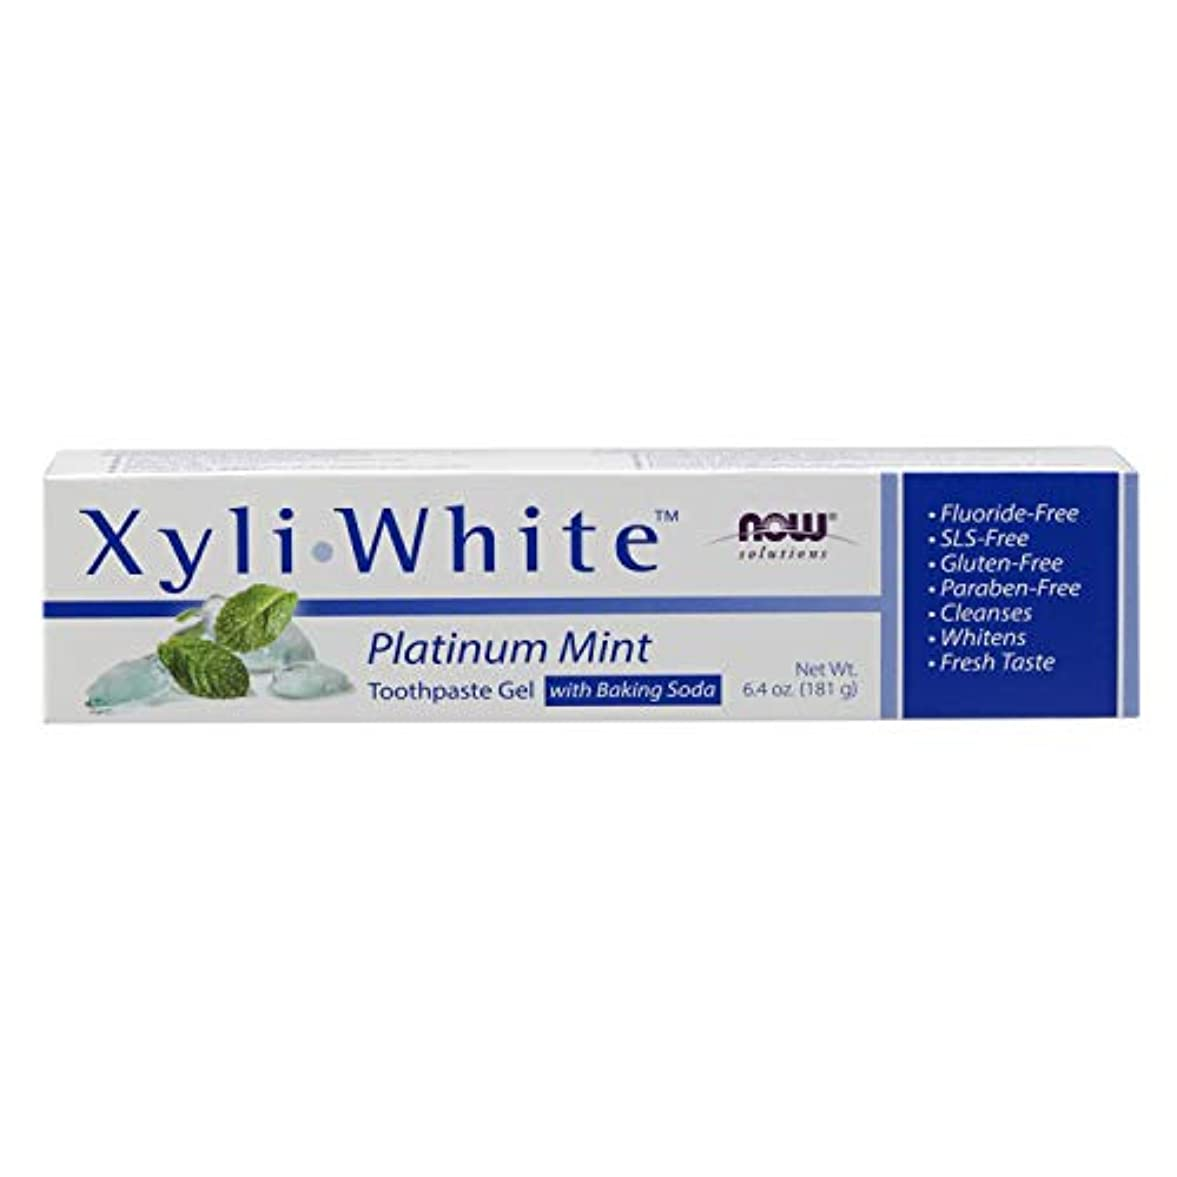 破裂保持するピンチ海外直送品 Now Foods Xyliwhite Platinum Mint with Baking Soda Toothpaste, 6.4 Oz